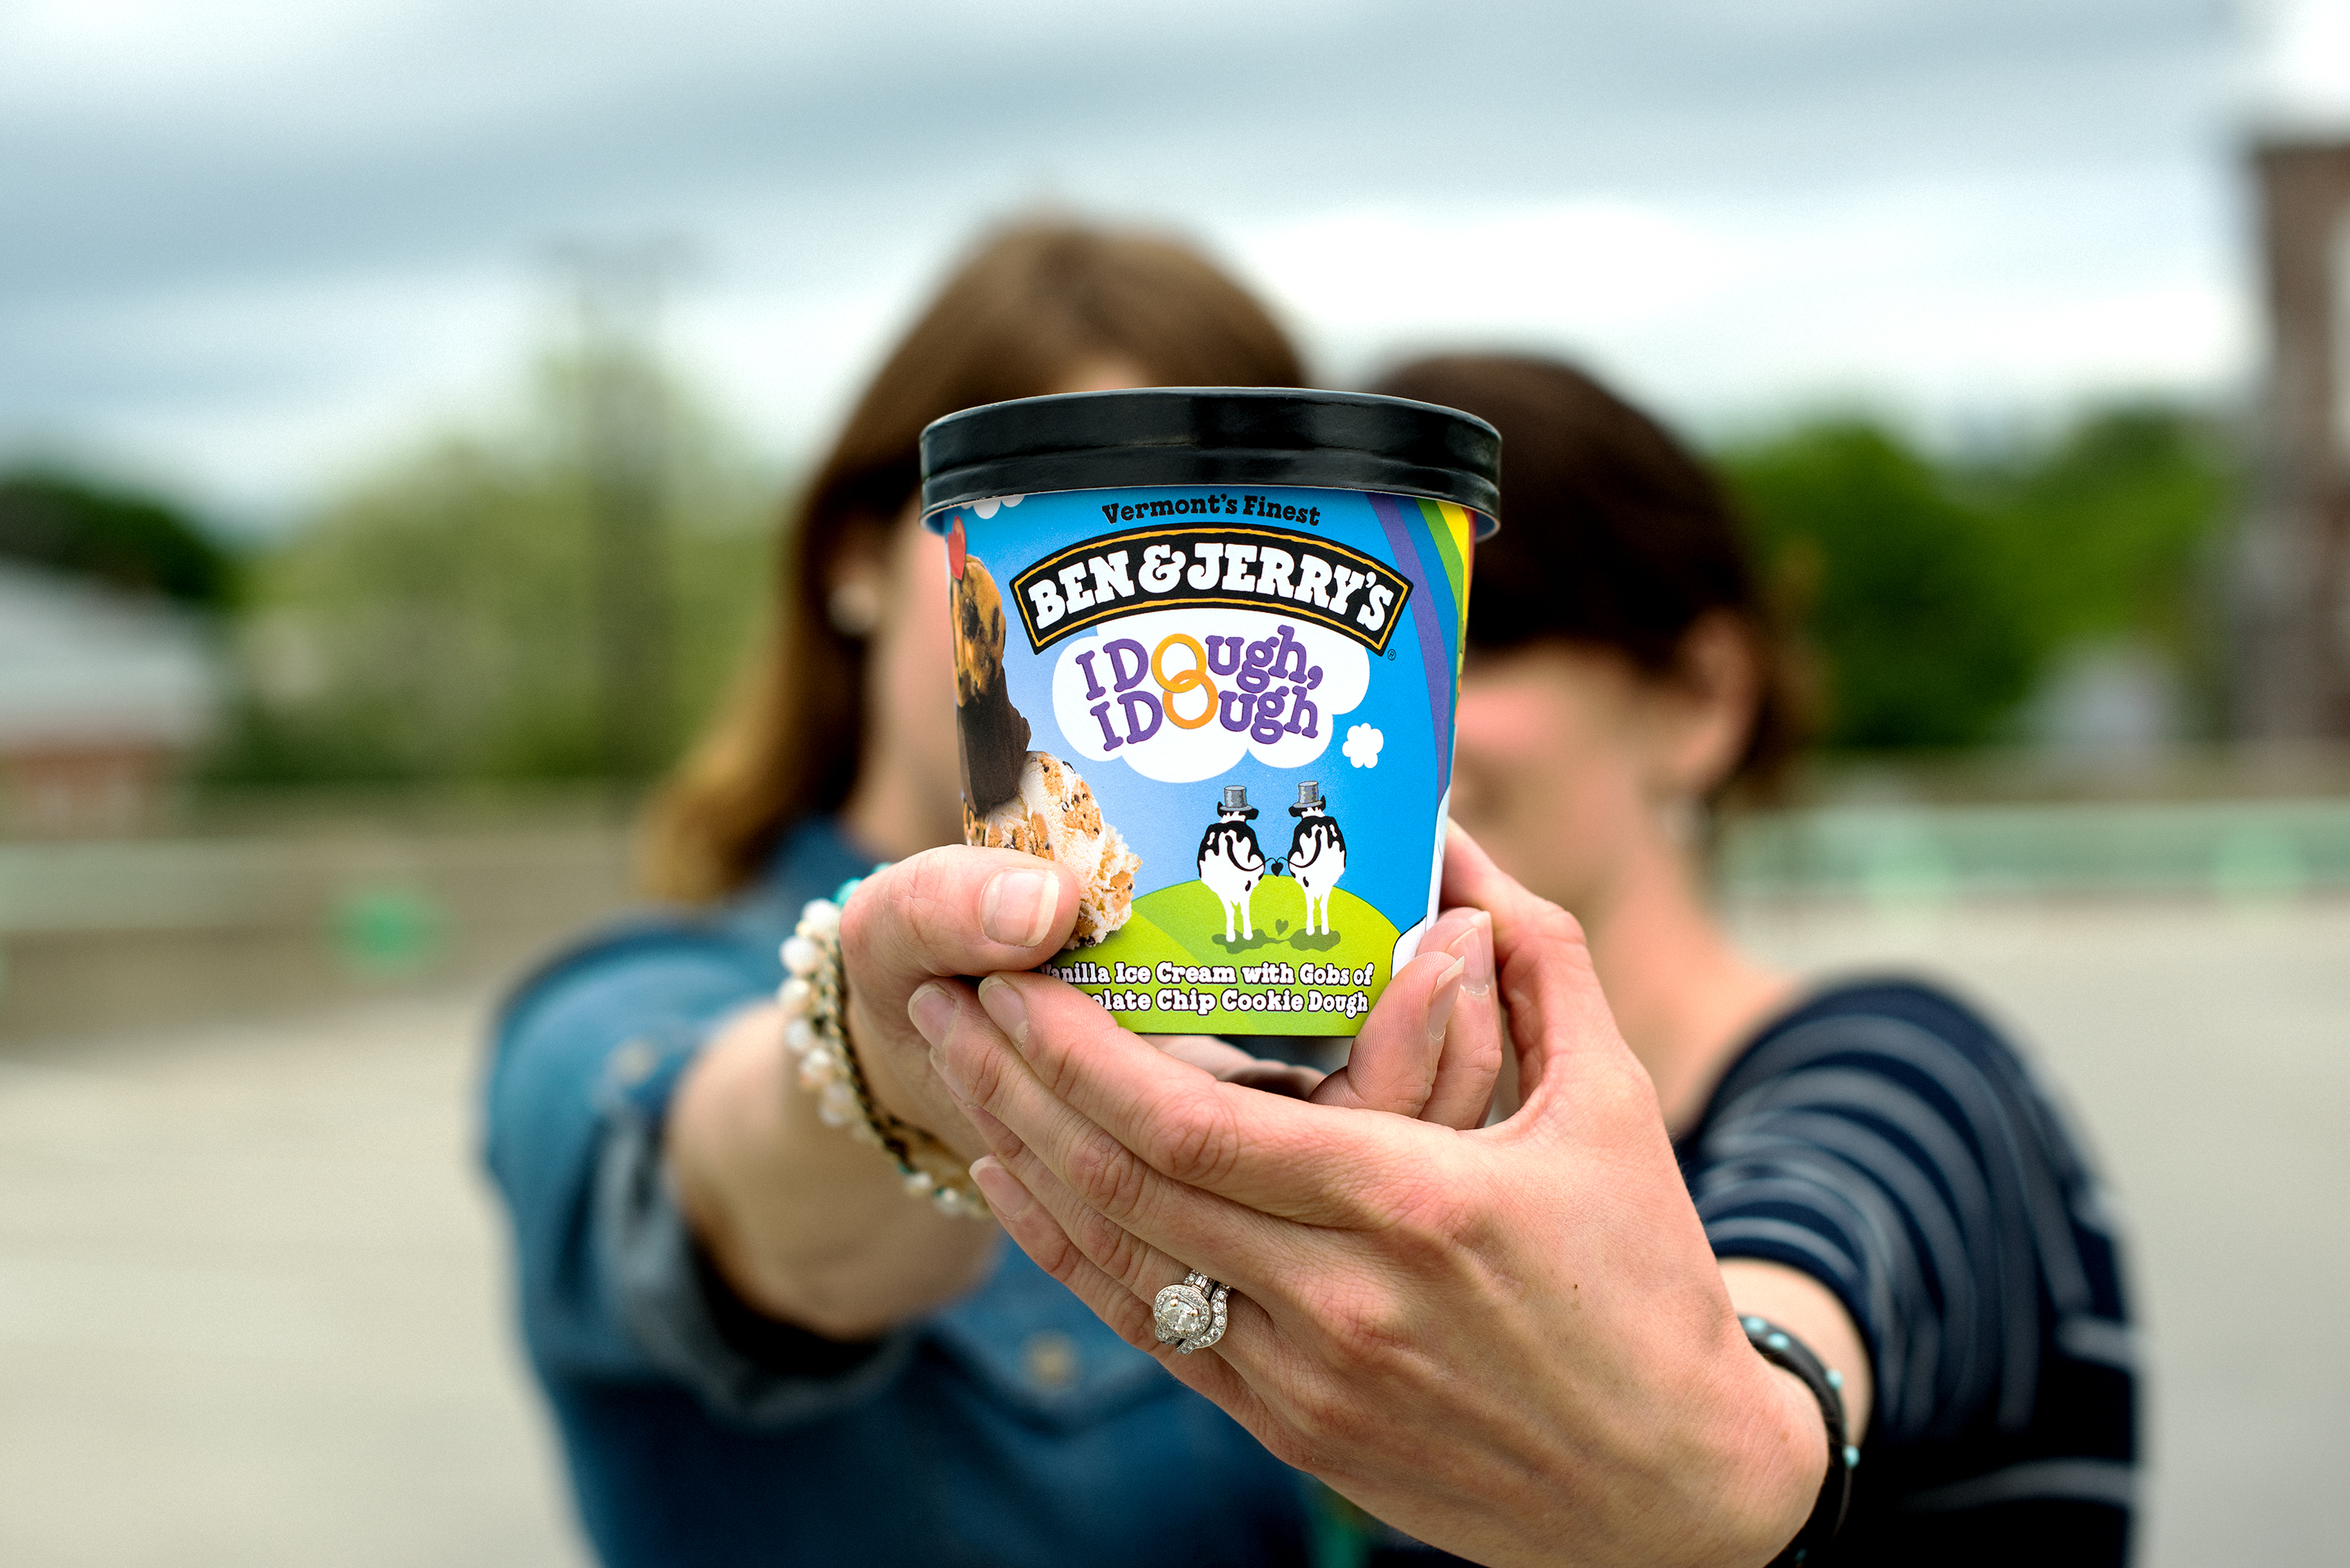 Ben jerrys are gay lovers